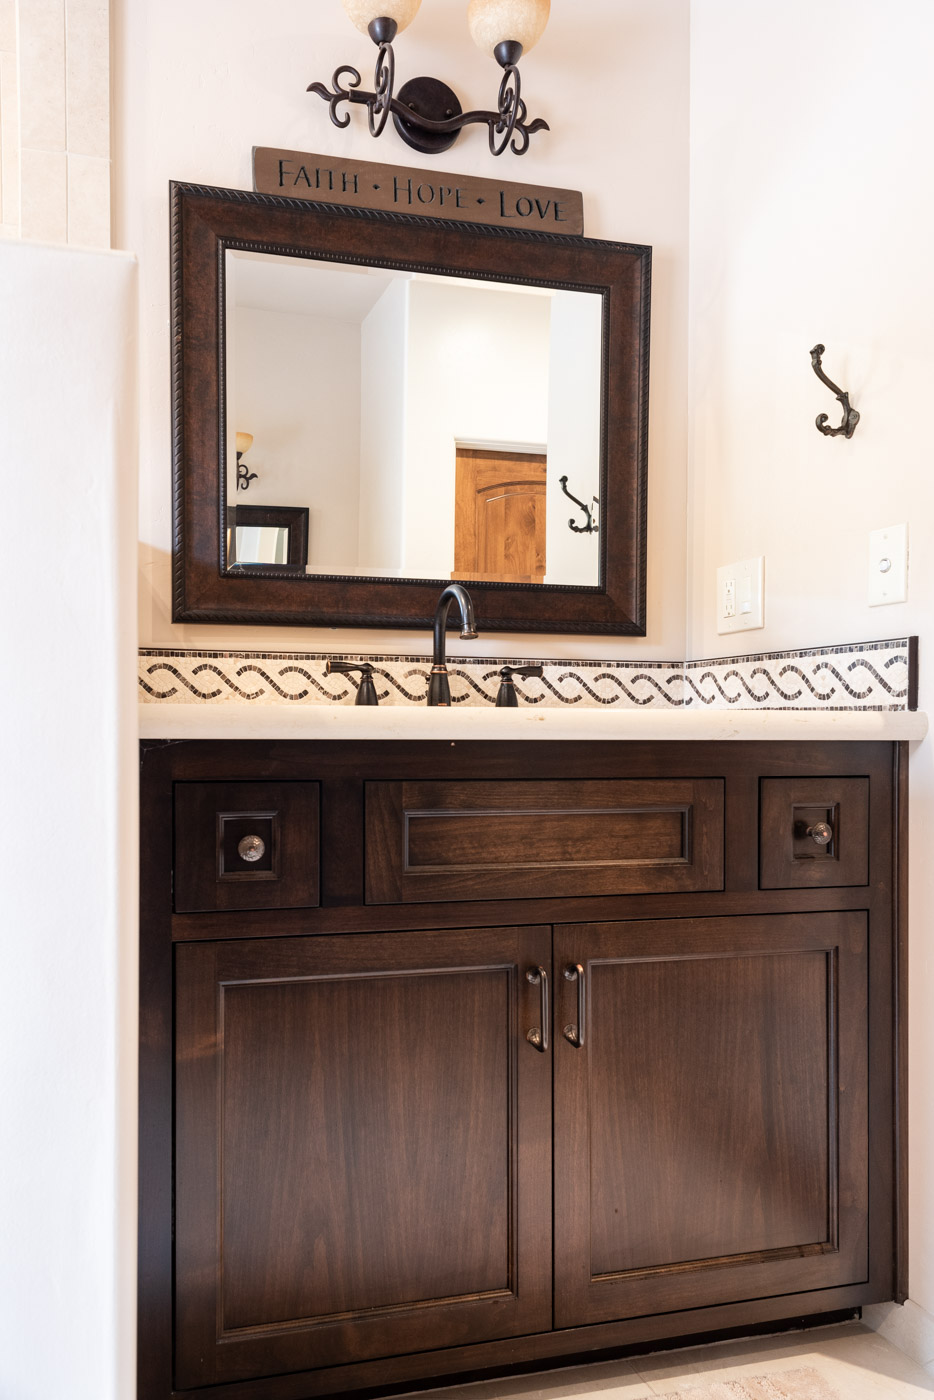 Tuscan Artisan custom stained Alder wood bathroom vanity cabinet